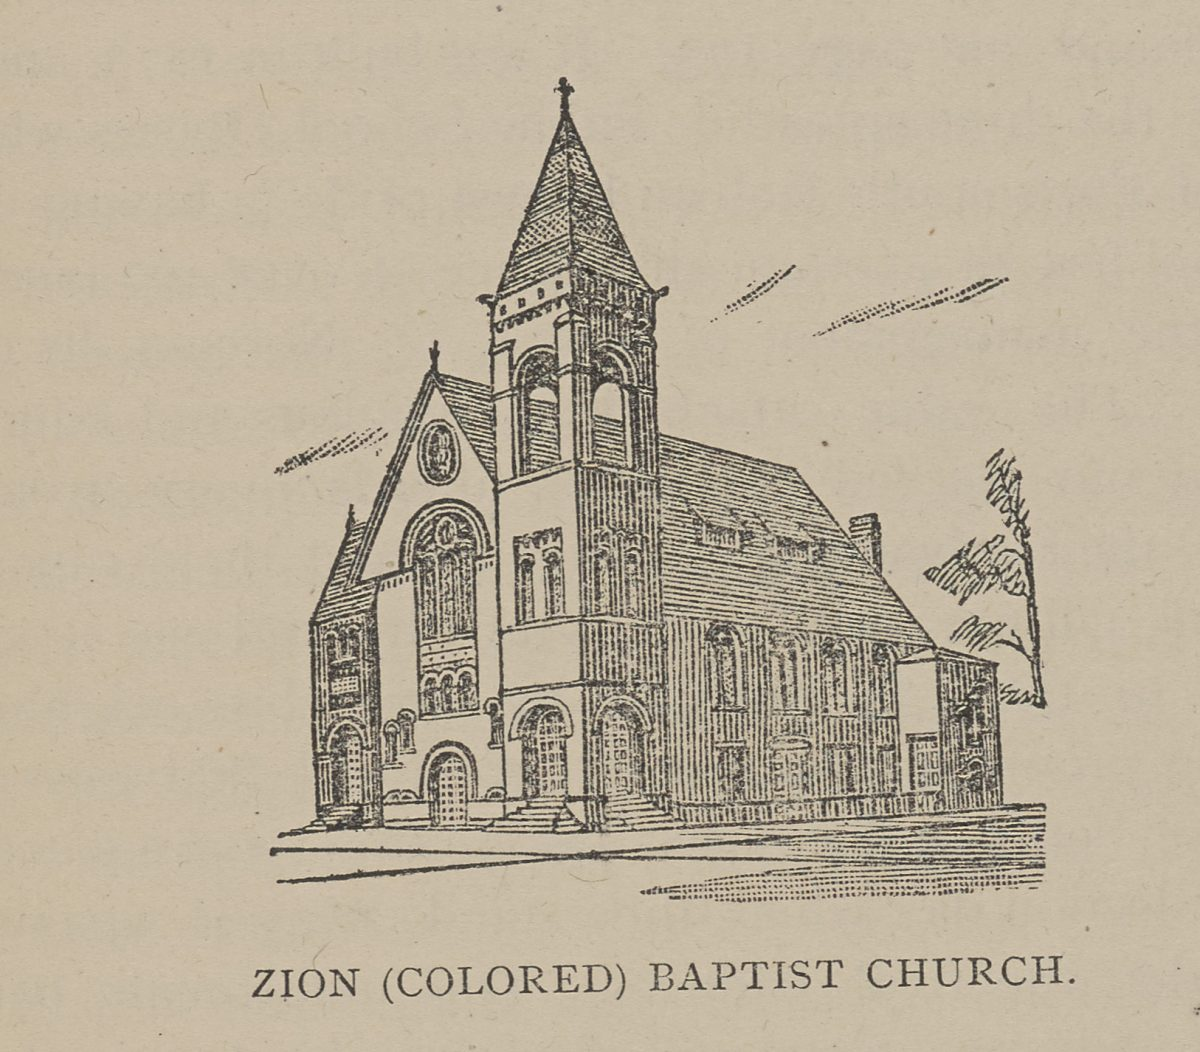 Zion (Colored) Baptist Church